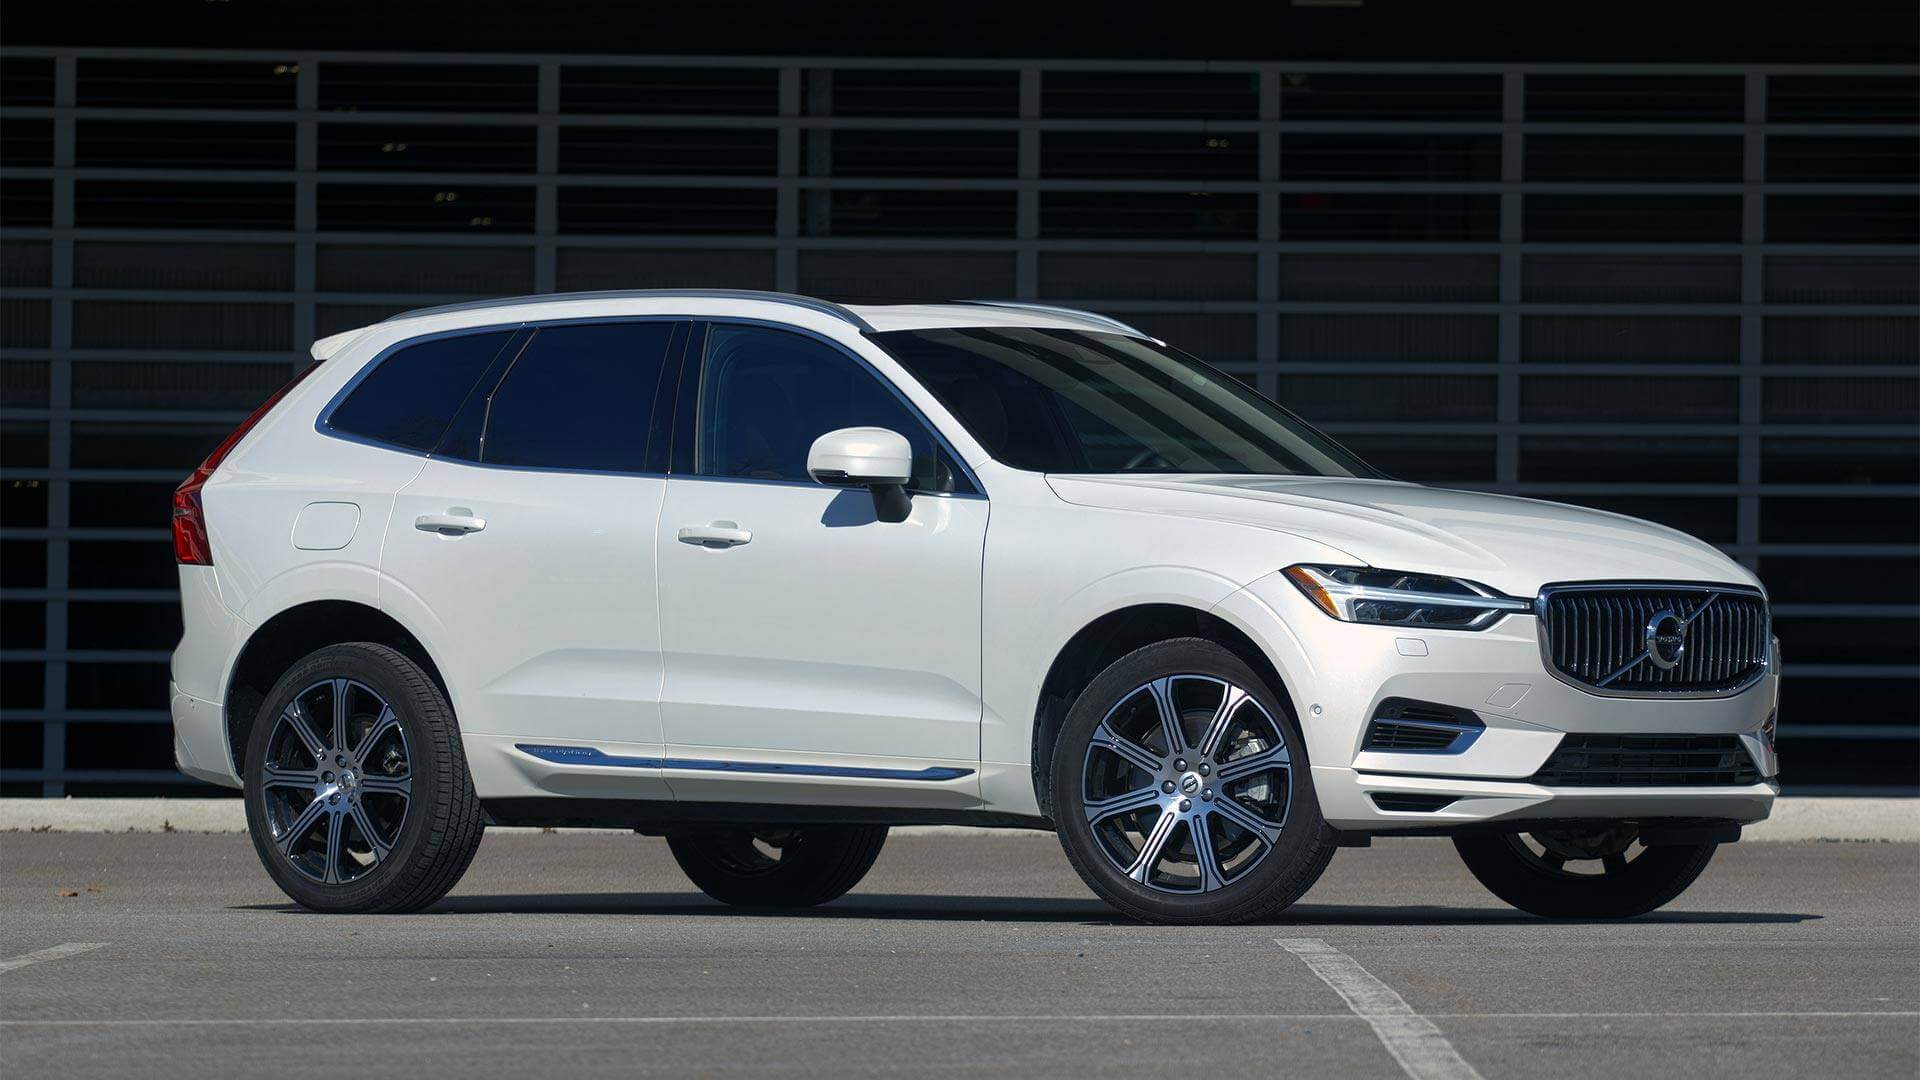 https://epunjaci.hr/wp-content/uploads/2018/10/2018-volvo-xc60-t8.jpg